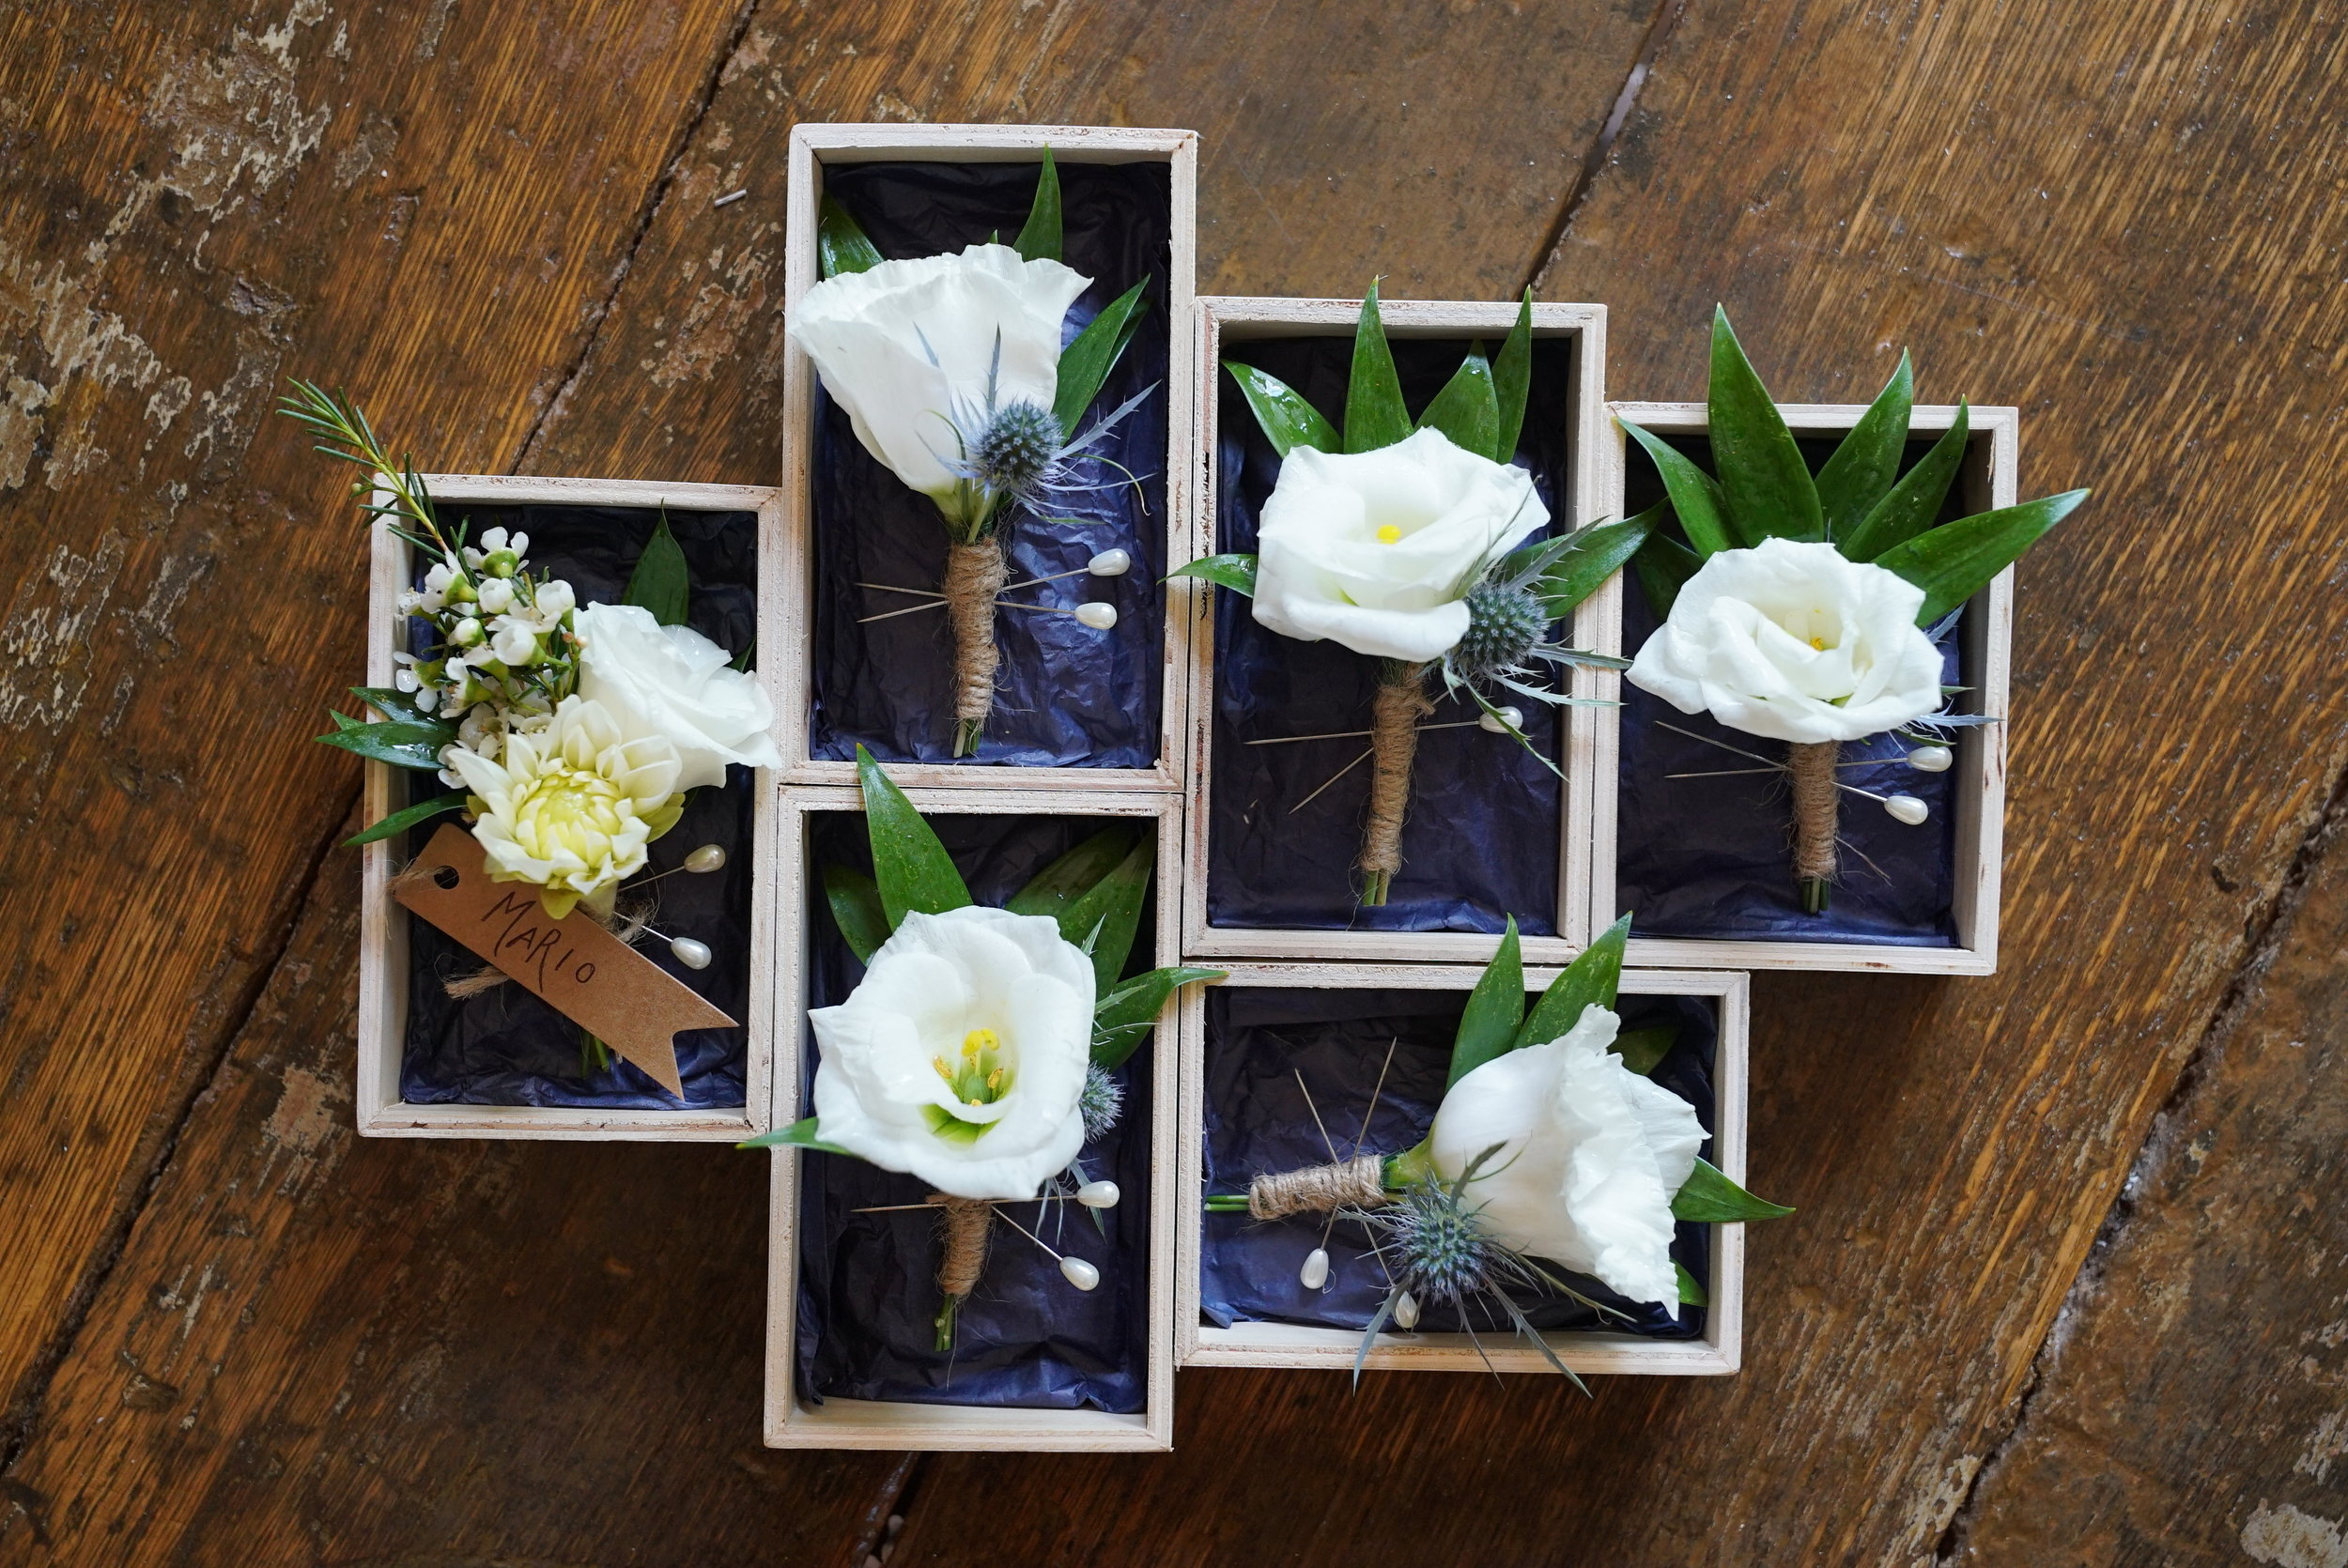 This trinket box made for the perfect delivery tray!